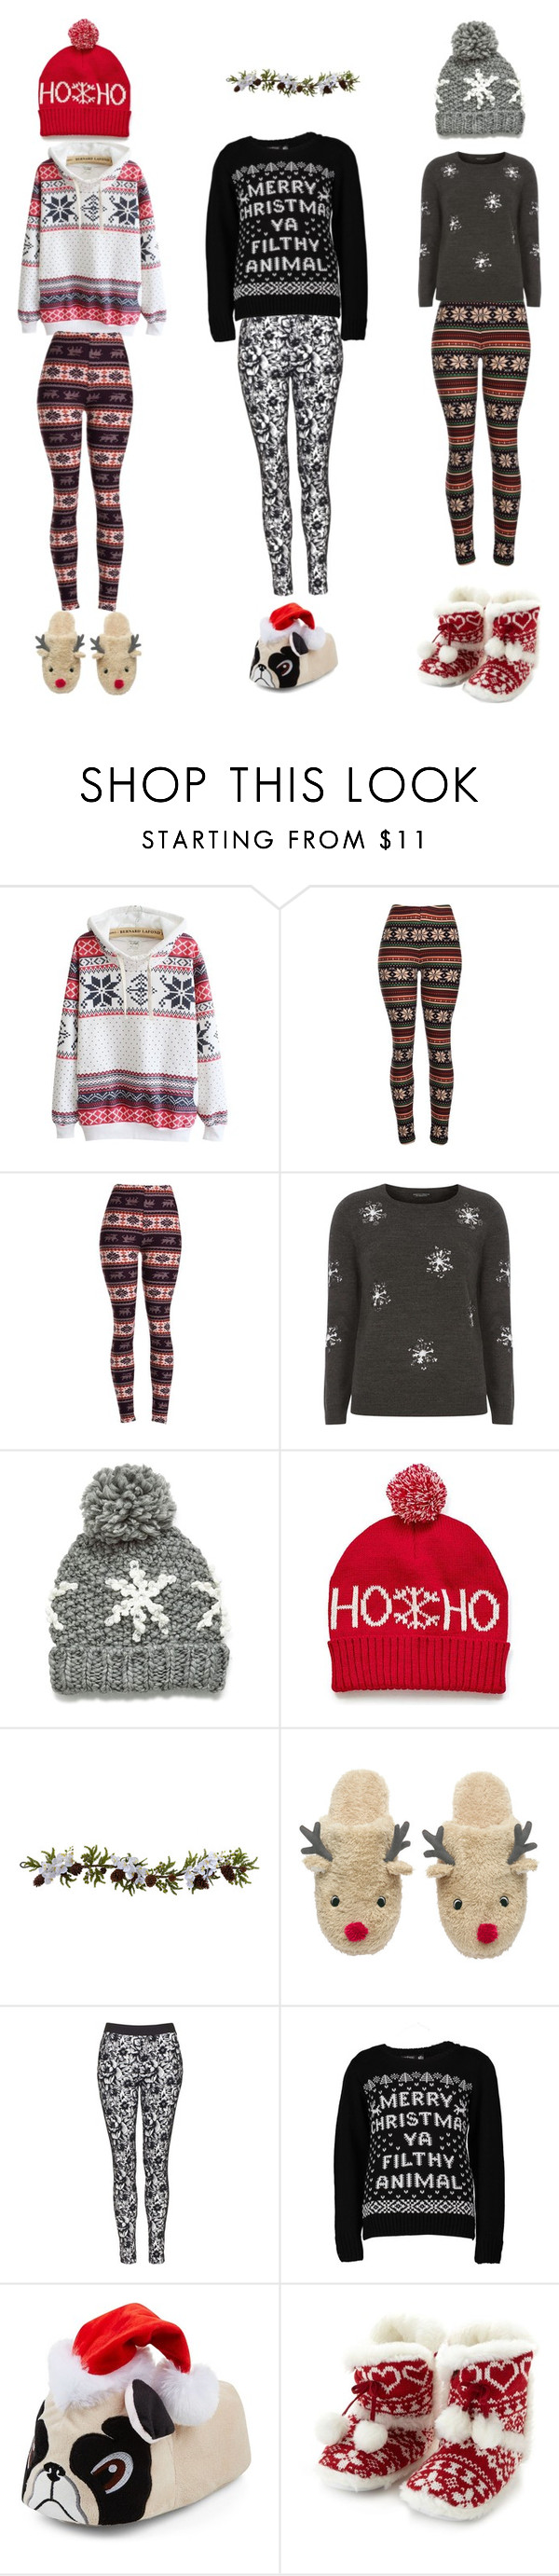 """Christmas clothes!"" by amyhnsn ❤ liked on Polyvore featuring Dorothy Perkins, Nearly Natural, Topshop, Boohoo and Lounge & Sleep"